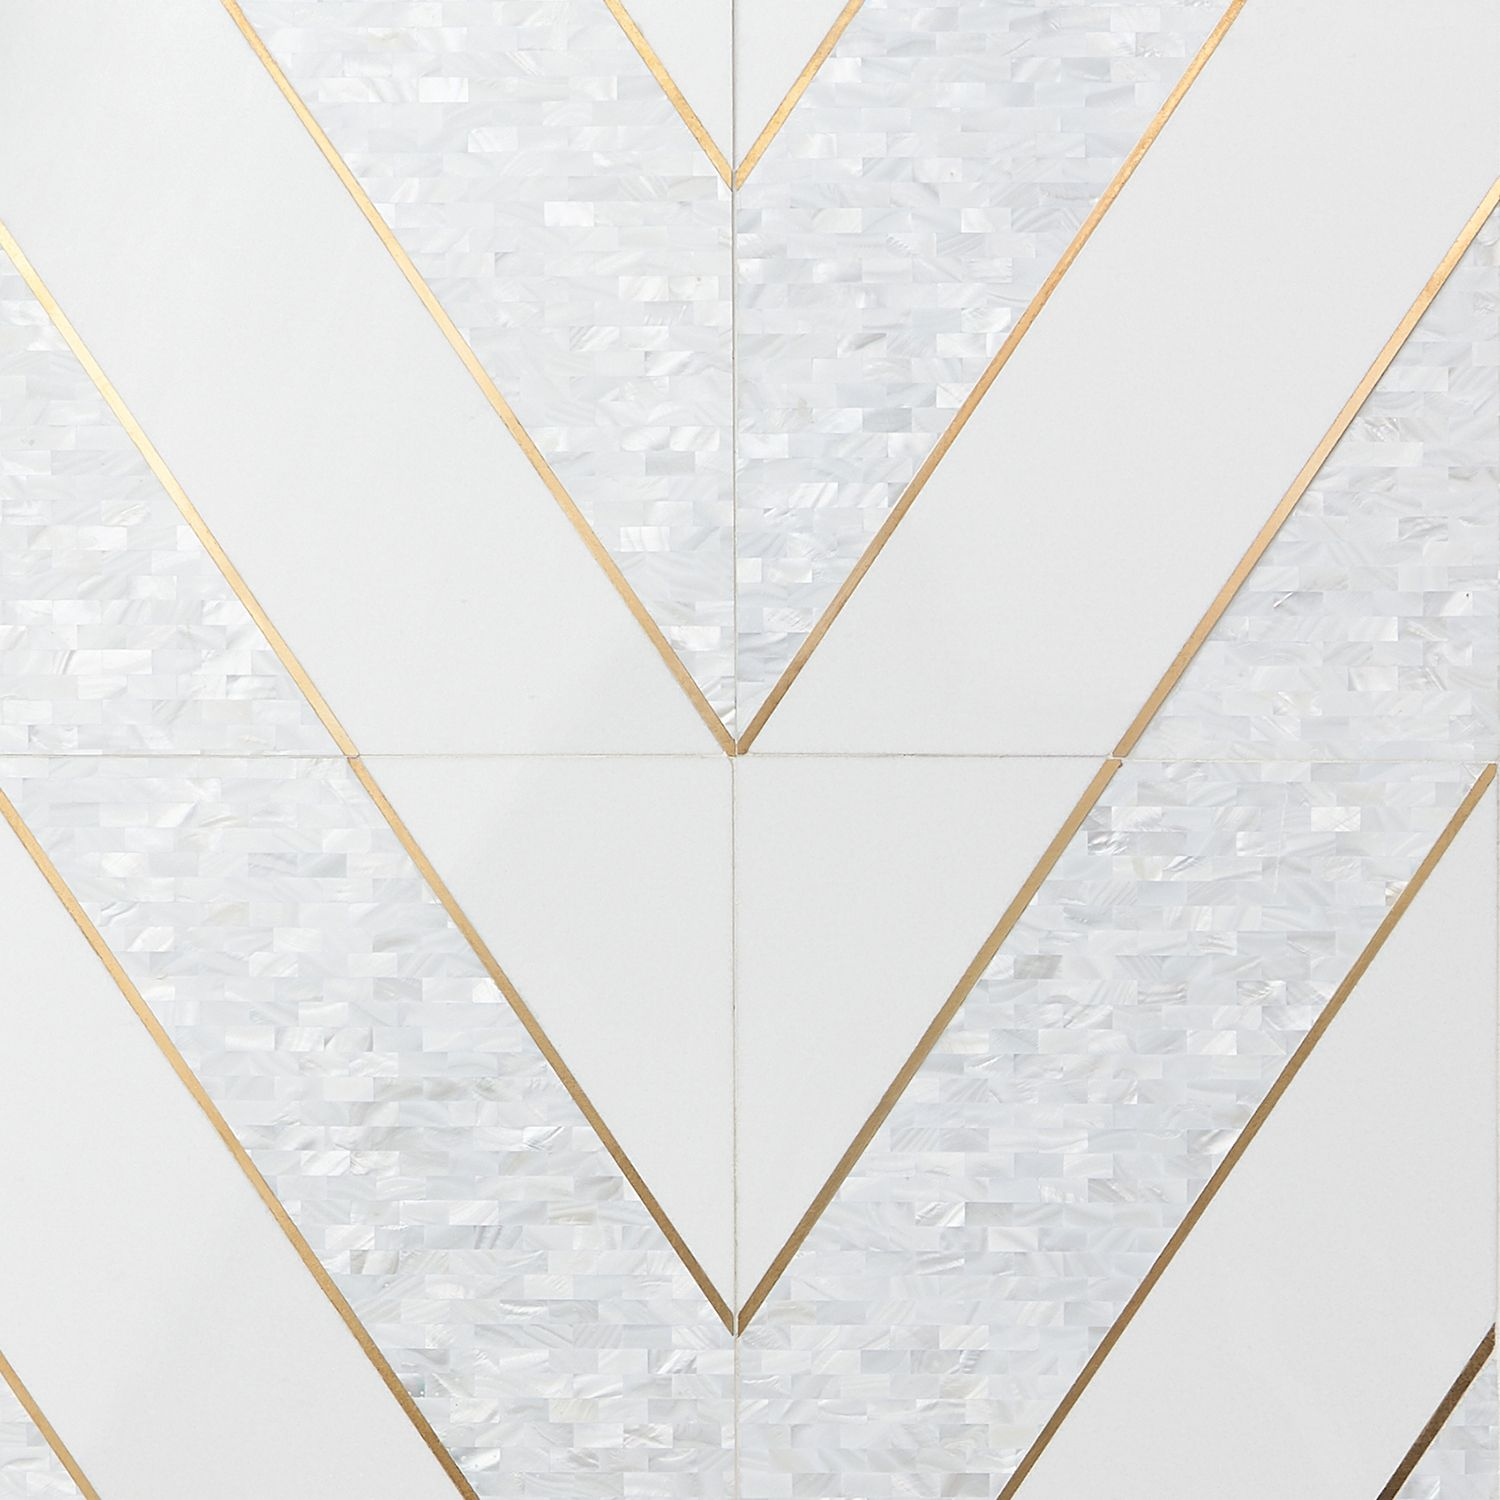 Timeless Perla Brass 12x18 Polished Tile By Elizabeth Sutton